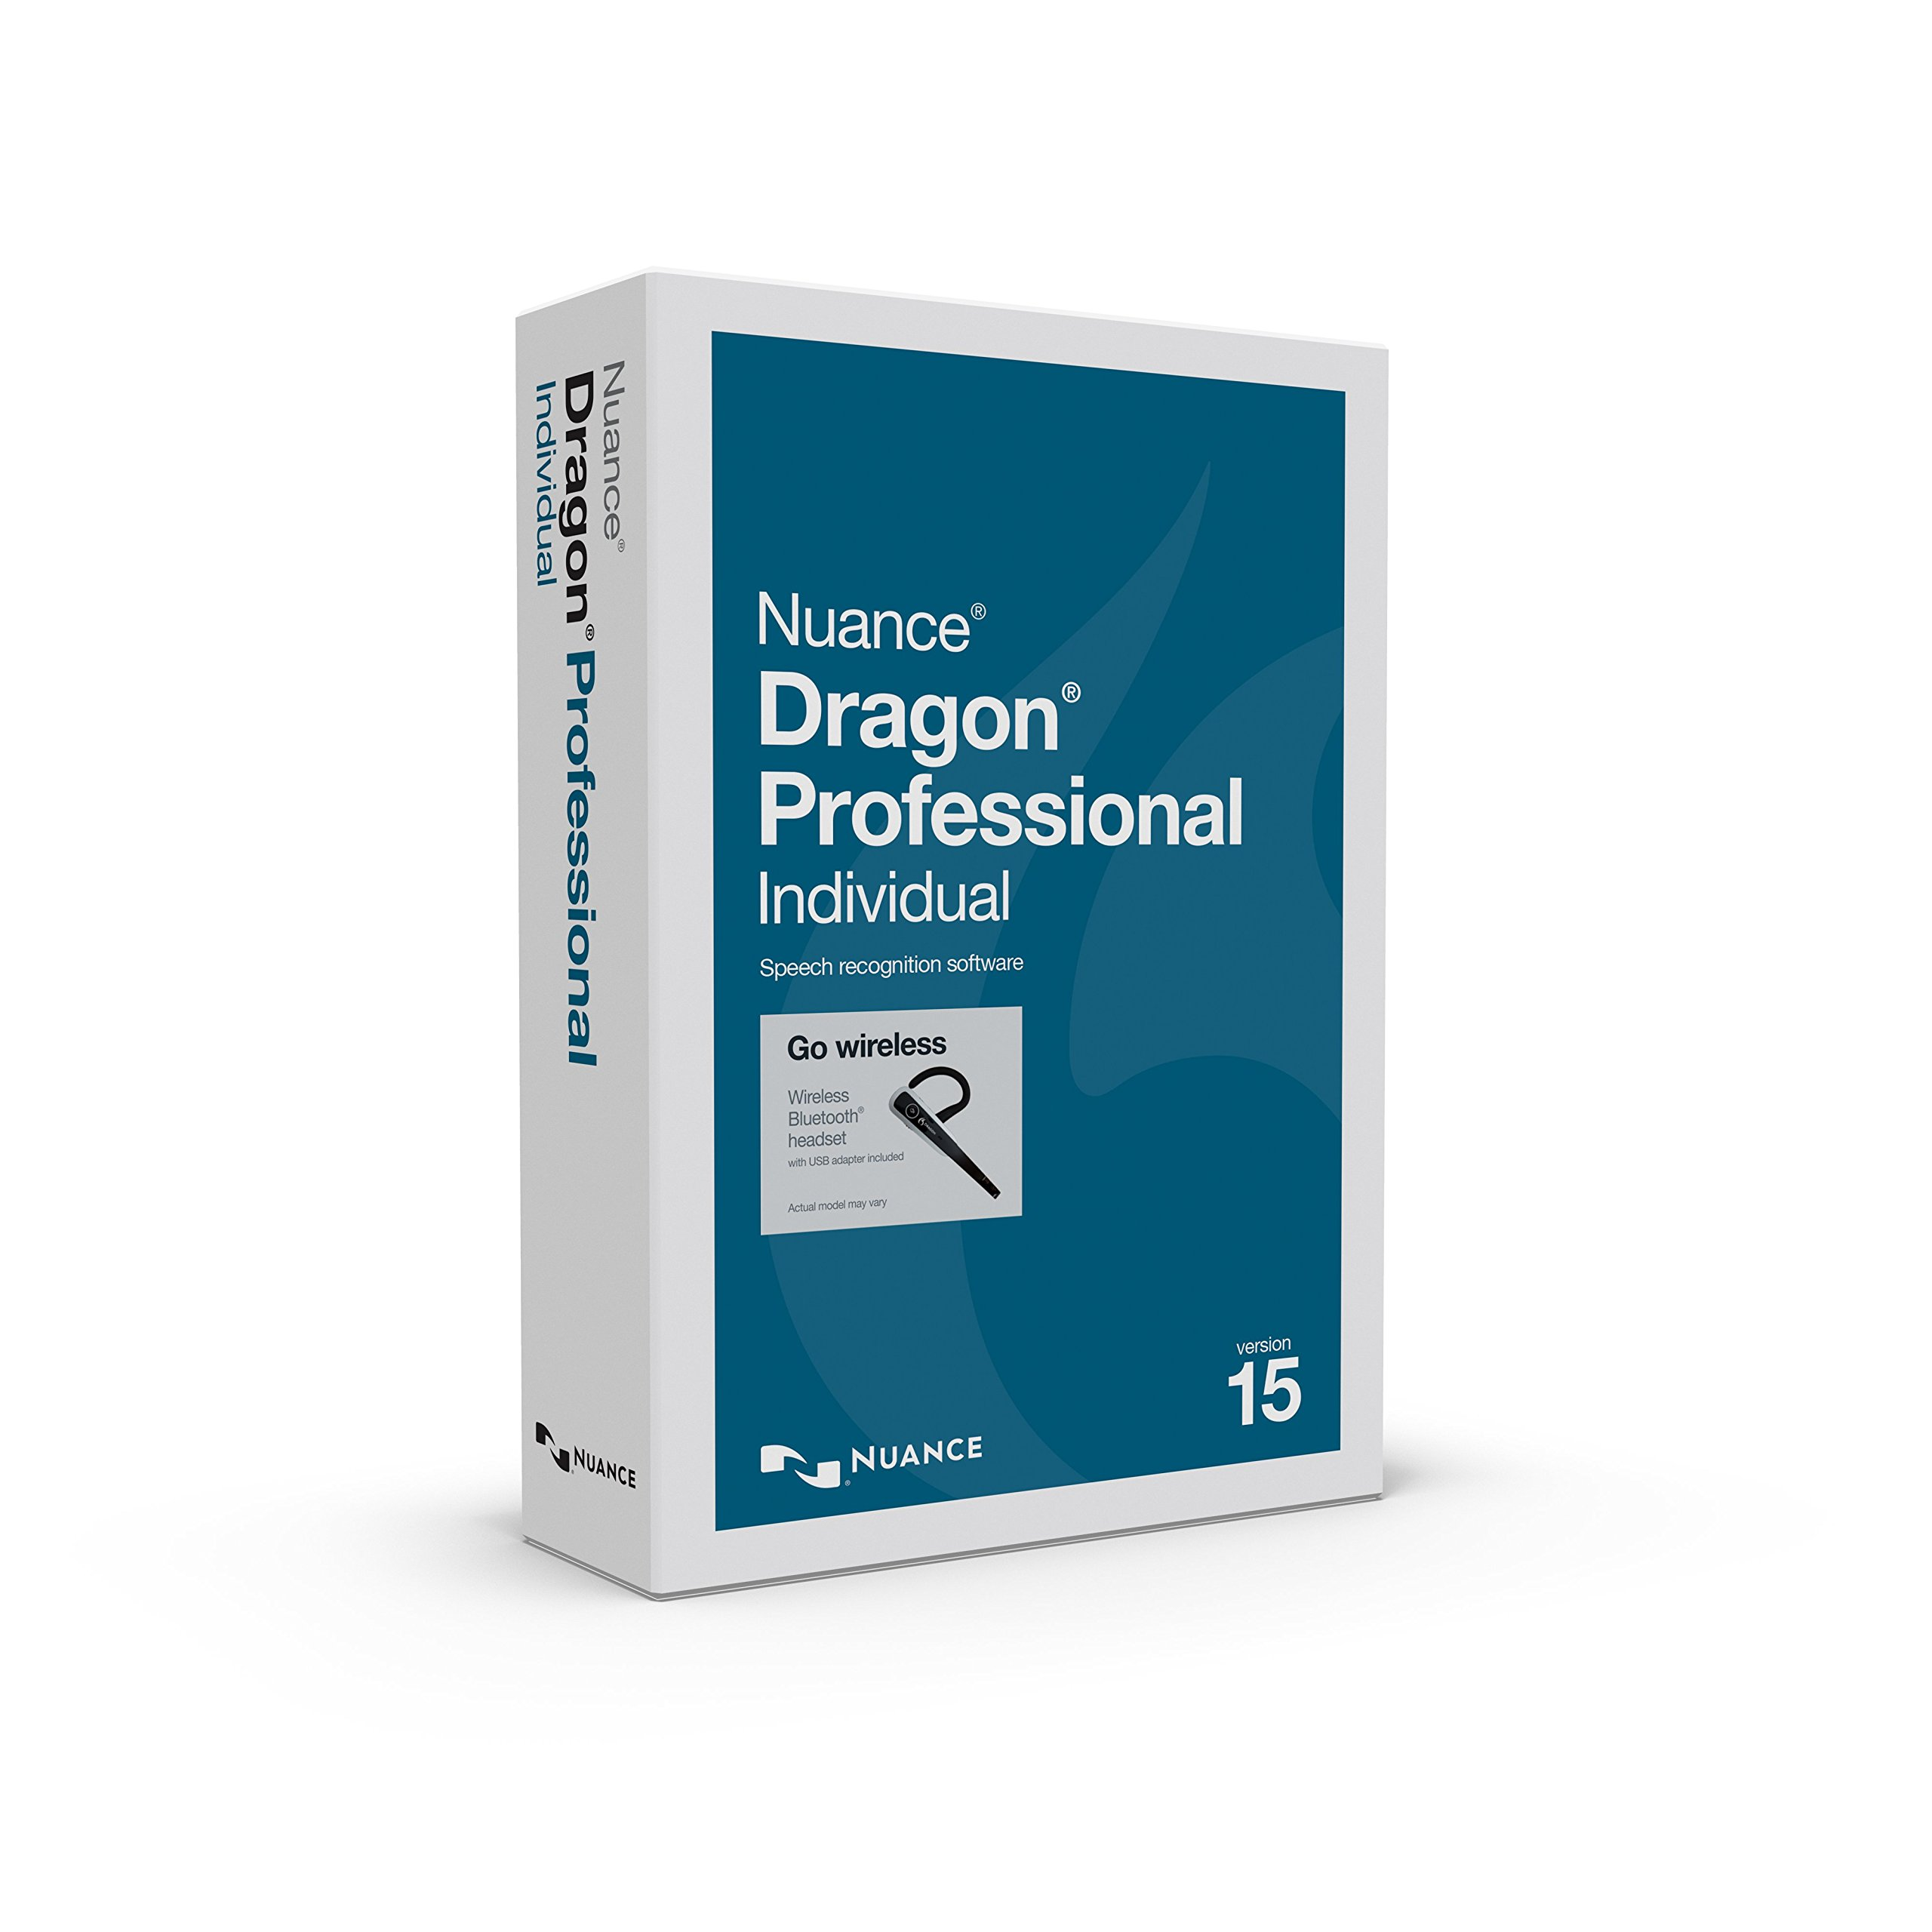 Dragon Professional Individual 15 with Bluetooth Headset by Nuance Dragon